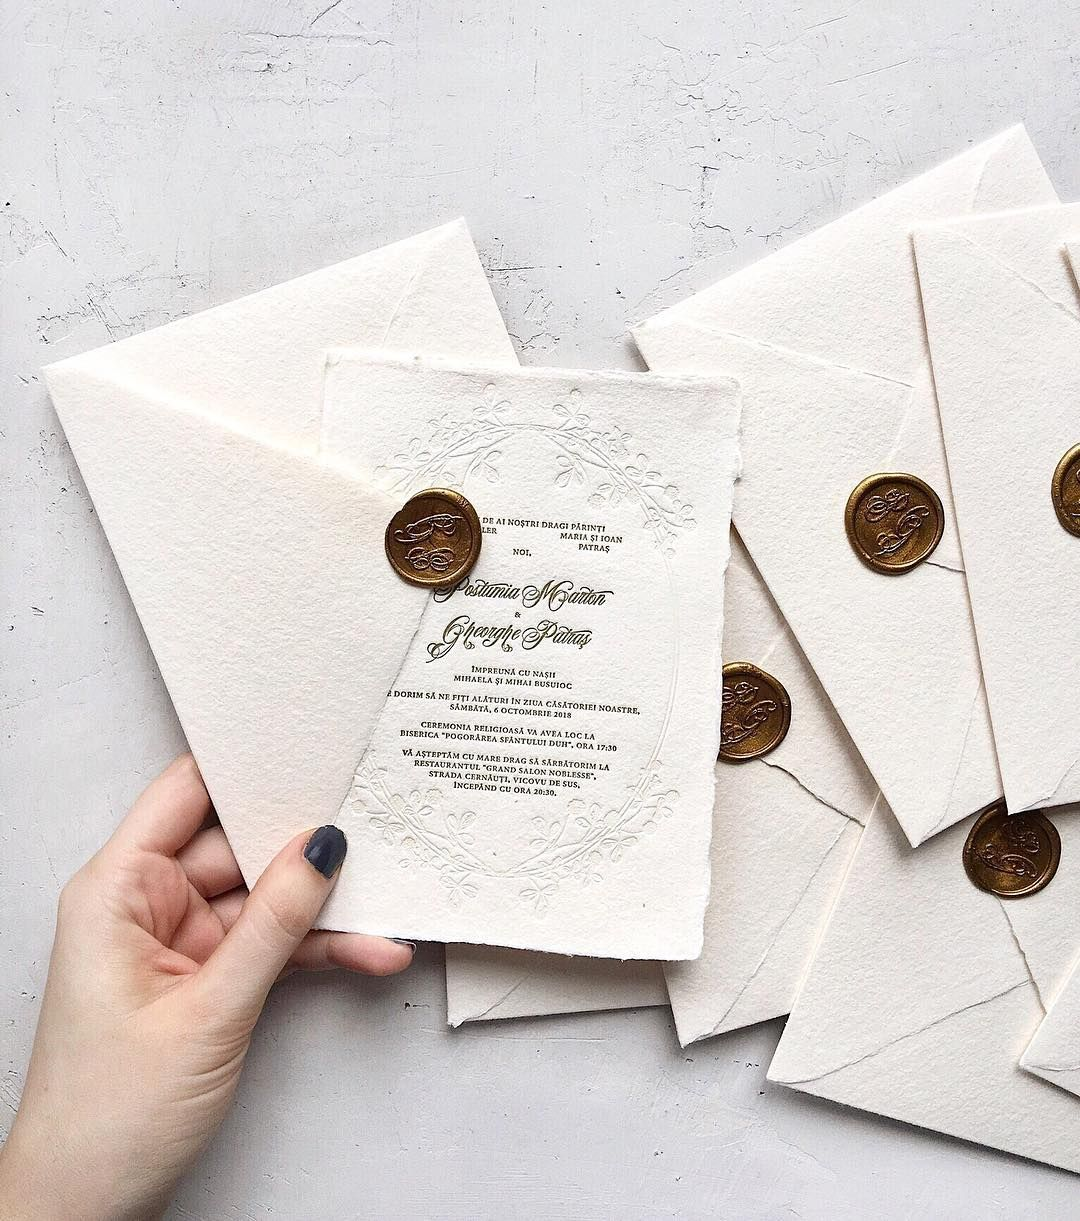 Matchy Matchy Letterpress Invite And Handmade Envelope: Elegant Letterpress Wedding Invitations, Handmade